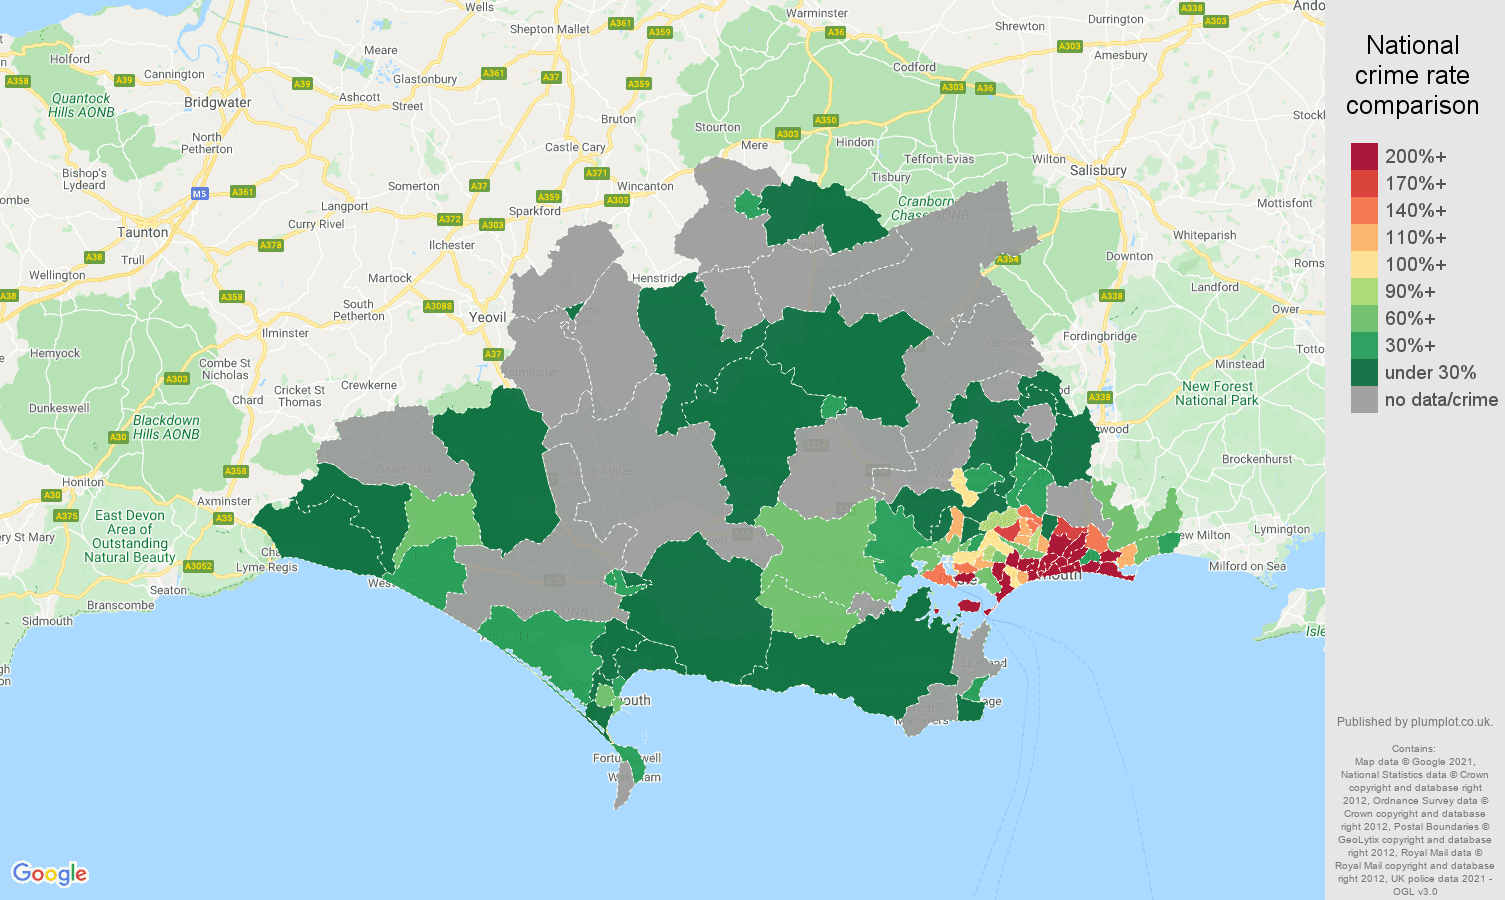 Dorset bicycle theft crime rate comparison map